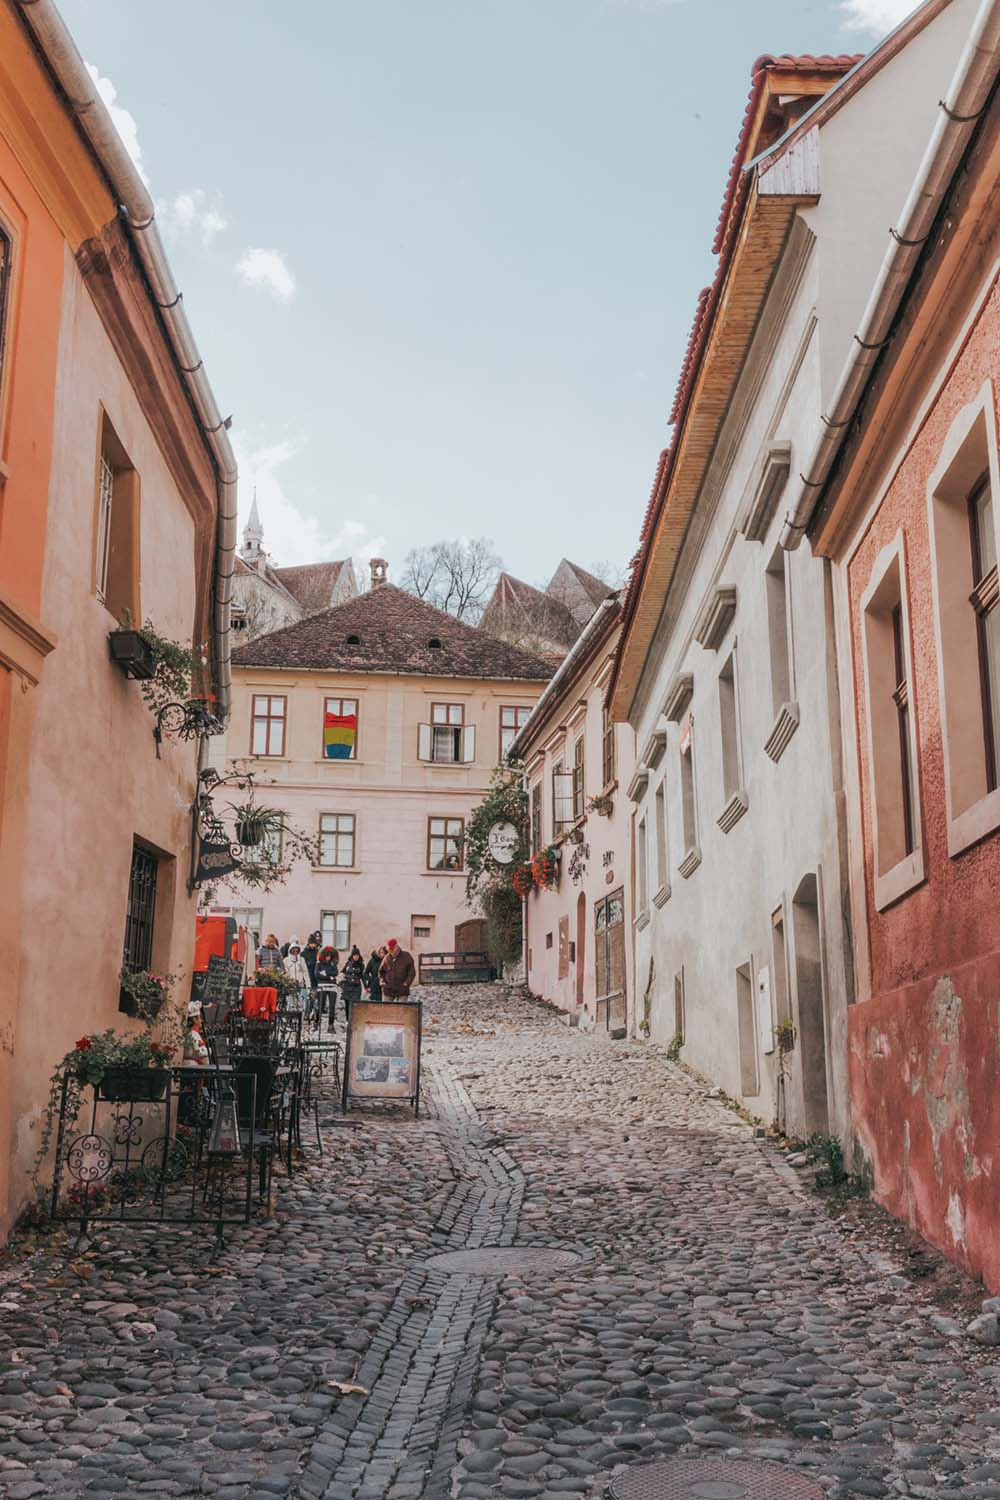 Sighisoara Transylvania - Best Cities To Visit On a Romania Road Trip Itinerary